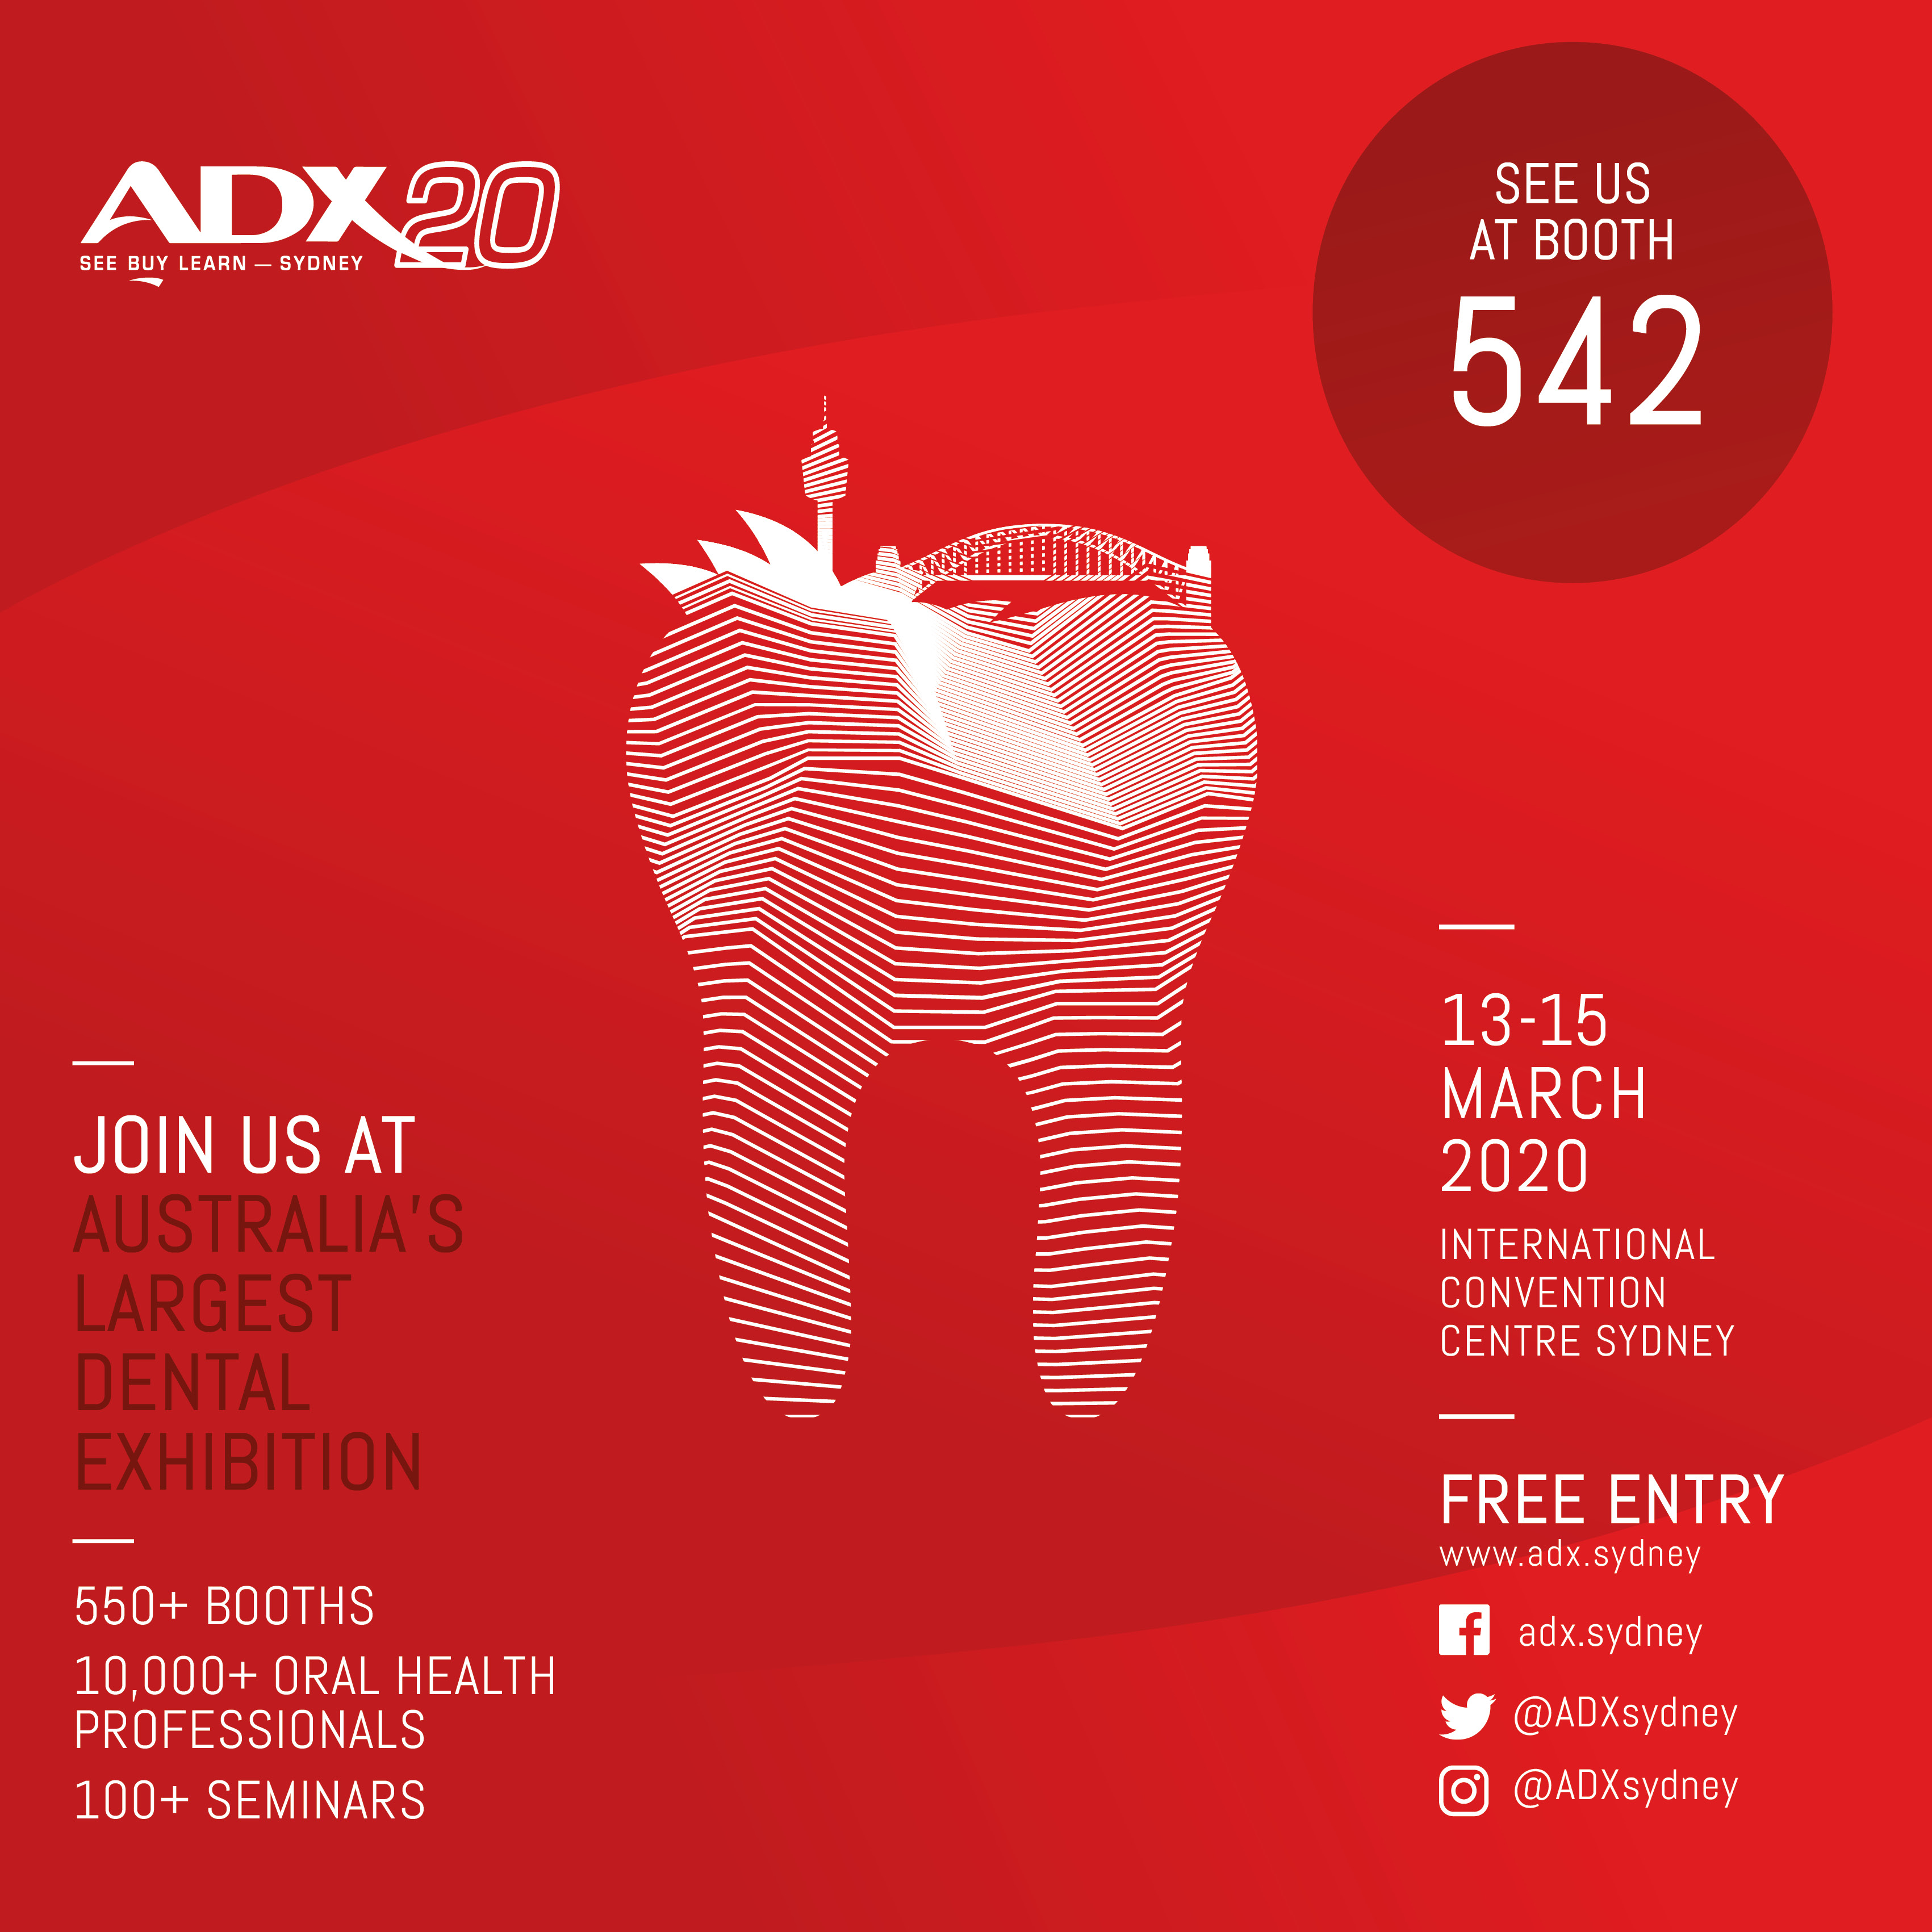 542-ADX BOOTH 542